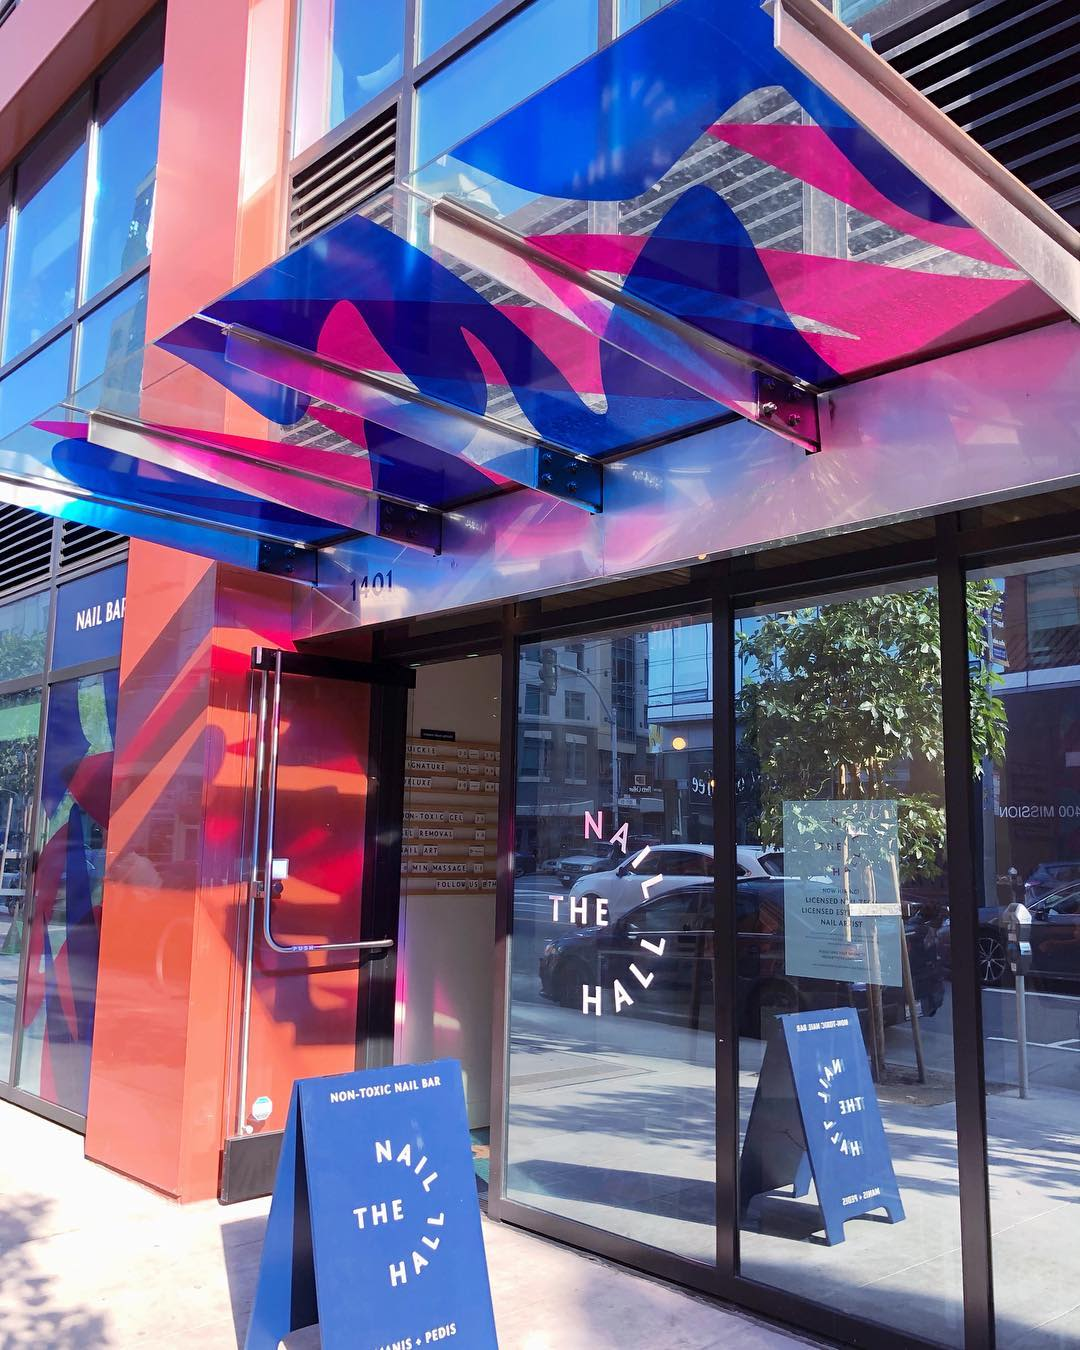 Art & Wall Decor by Nicole Mueller seen at The Nail Hall, San Francisco - Awning Colored Vinyl